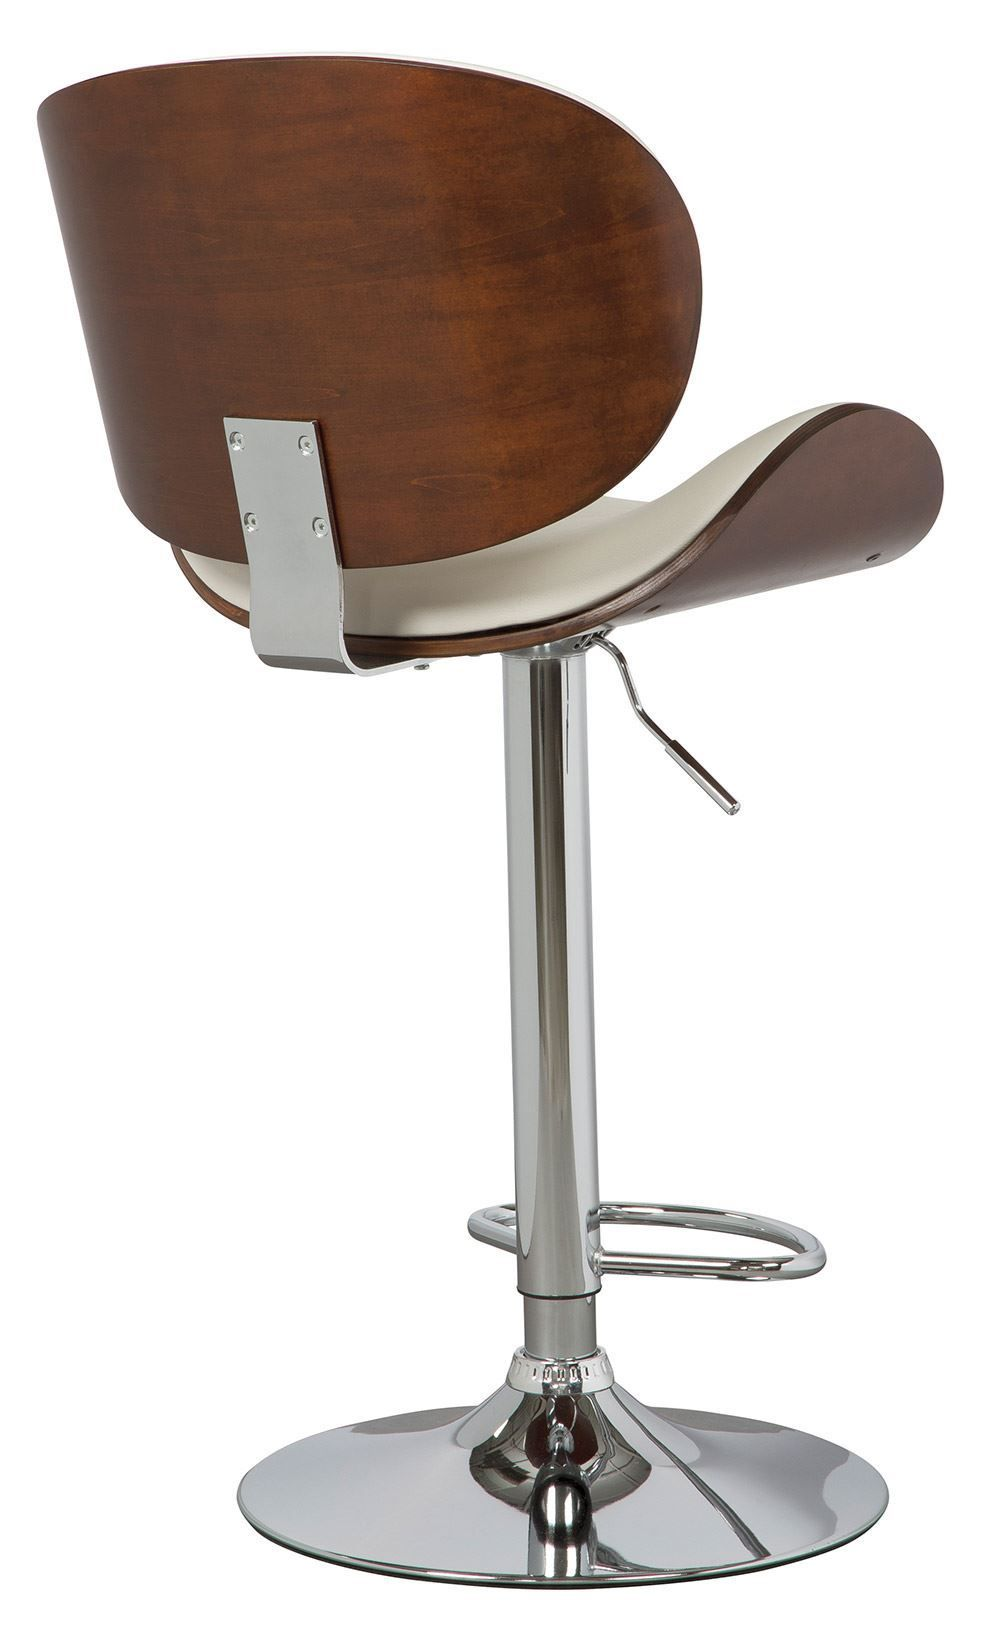 Picture of Gaslift Bone Brown Upholstered Swivel Barstool